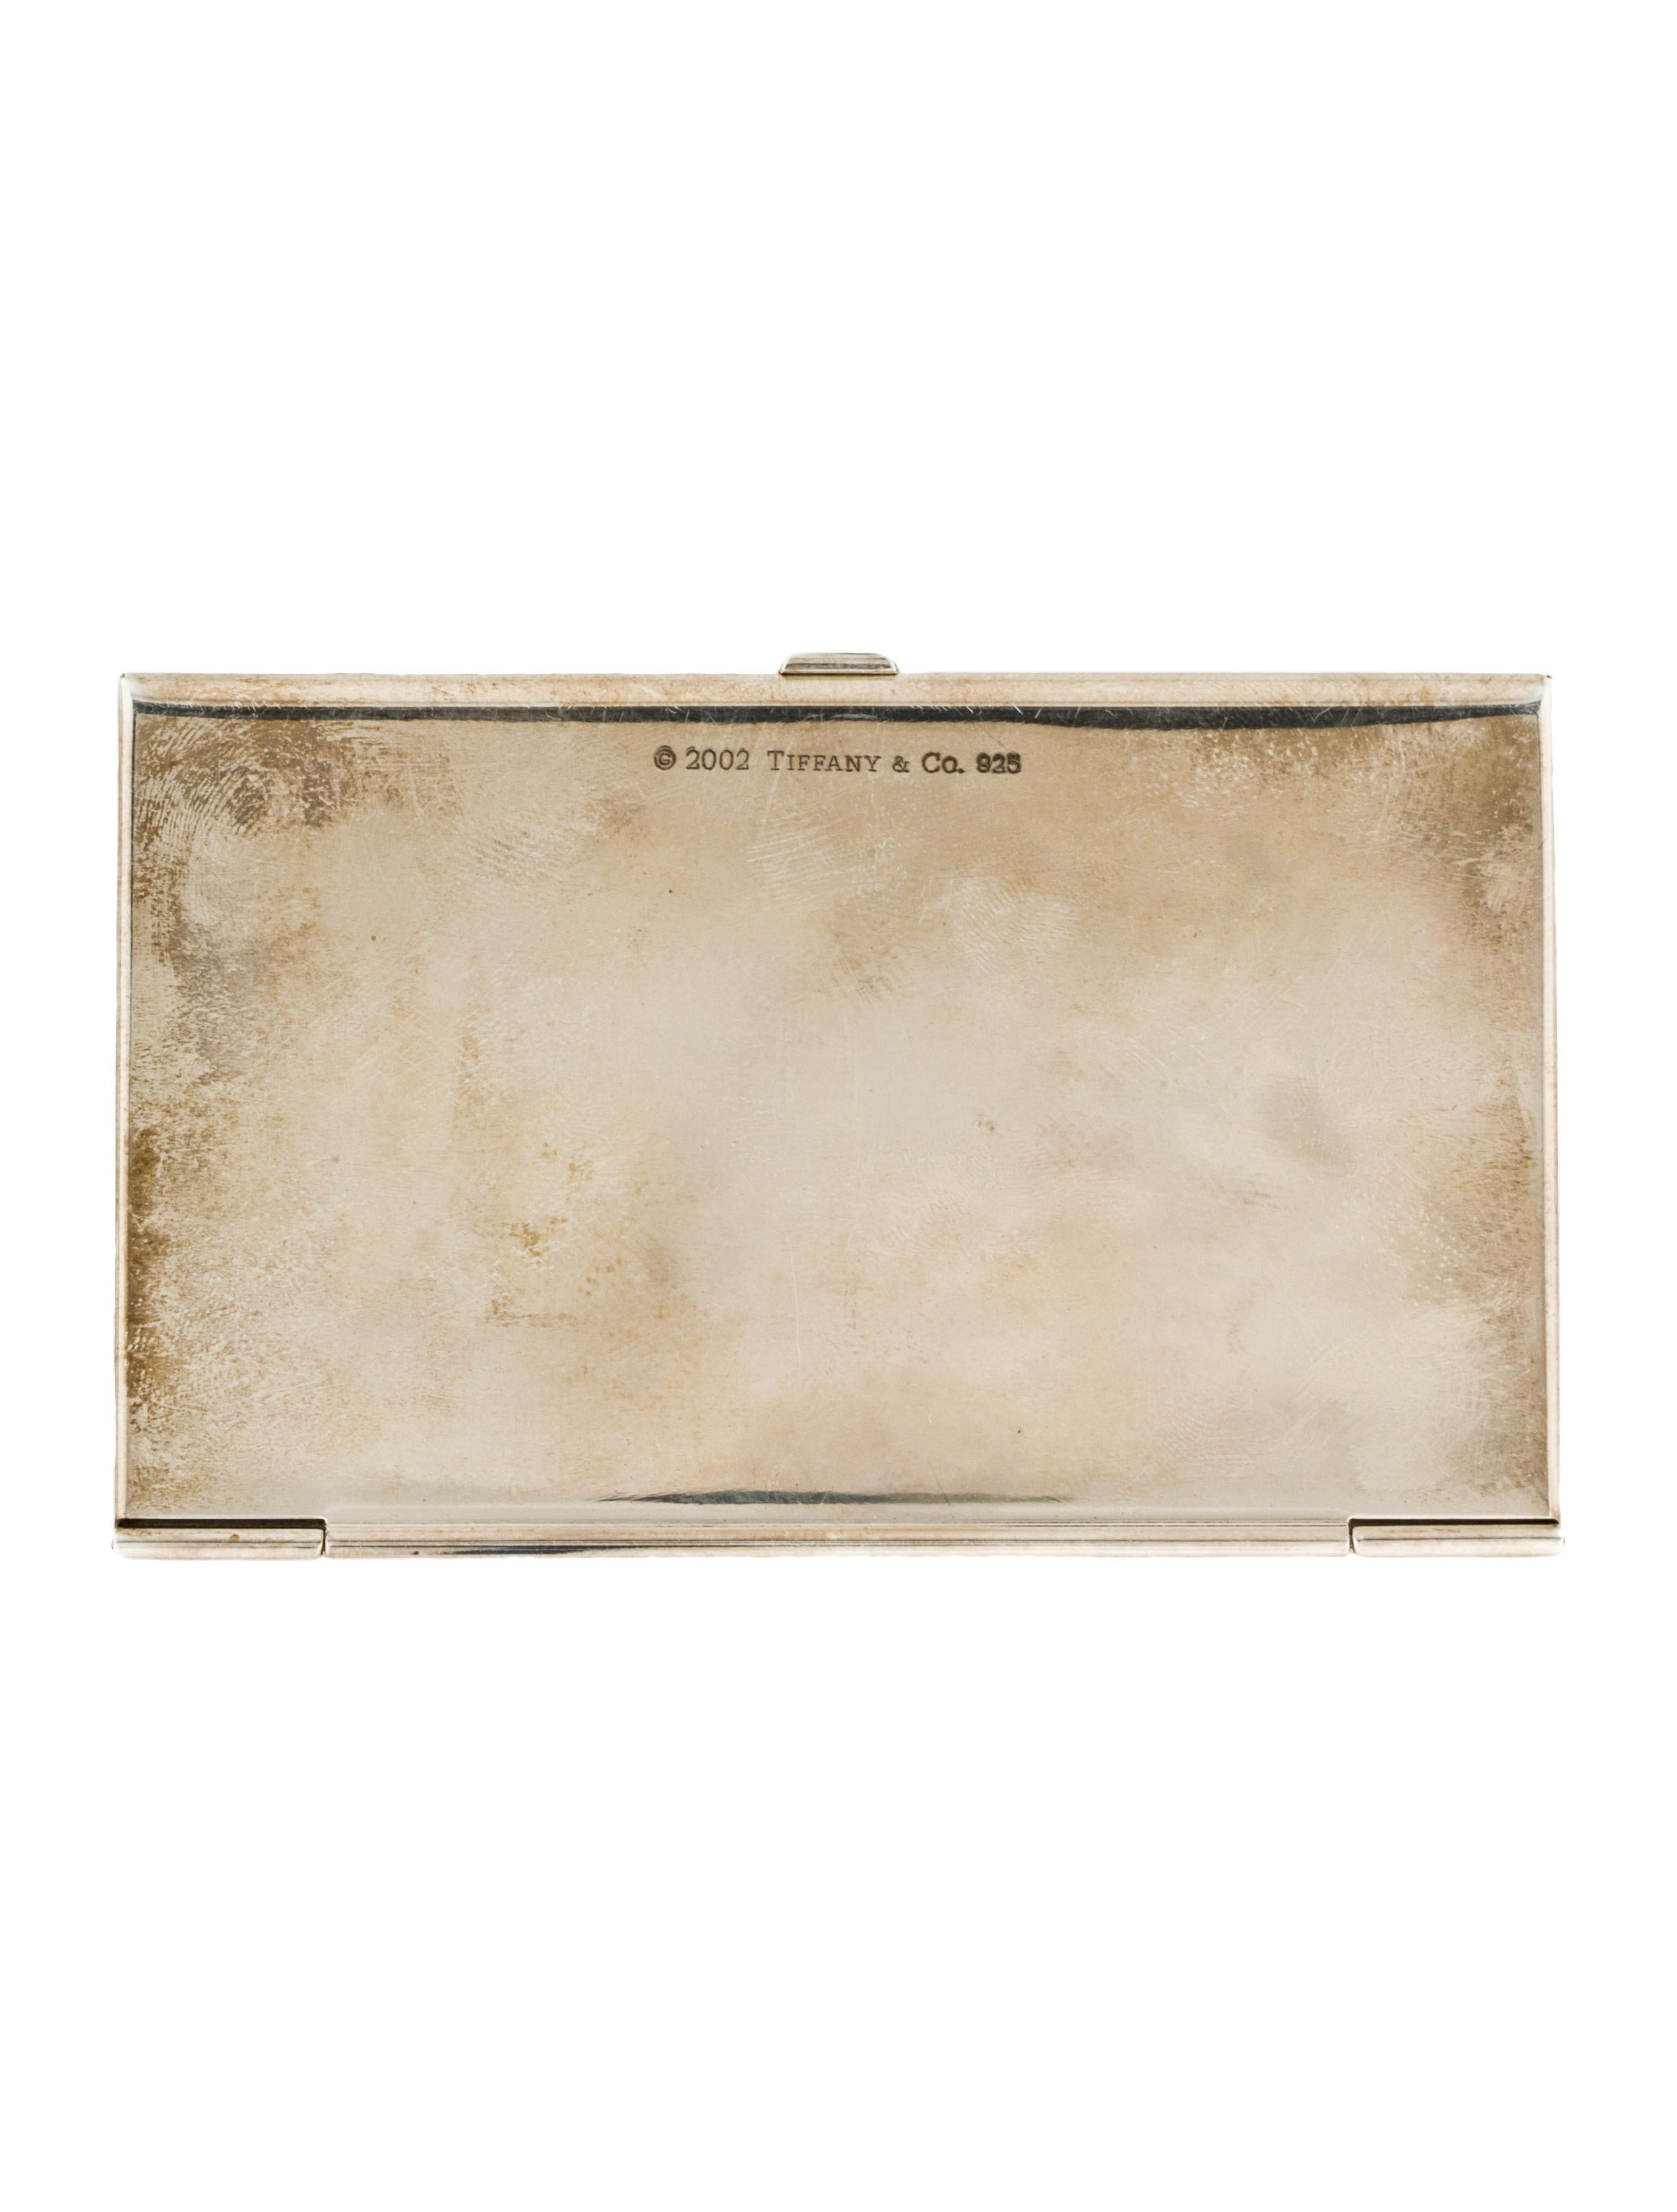 Tiffany co silver plate business card holder decor and silver plate business card holder reheart Images